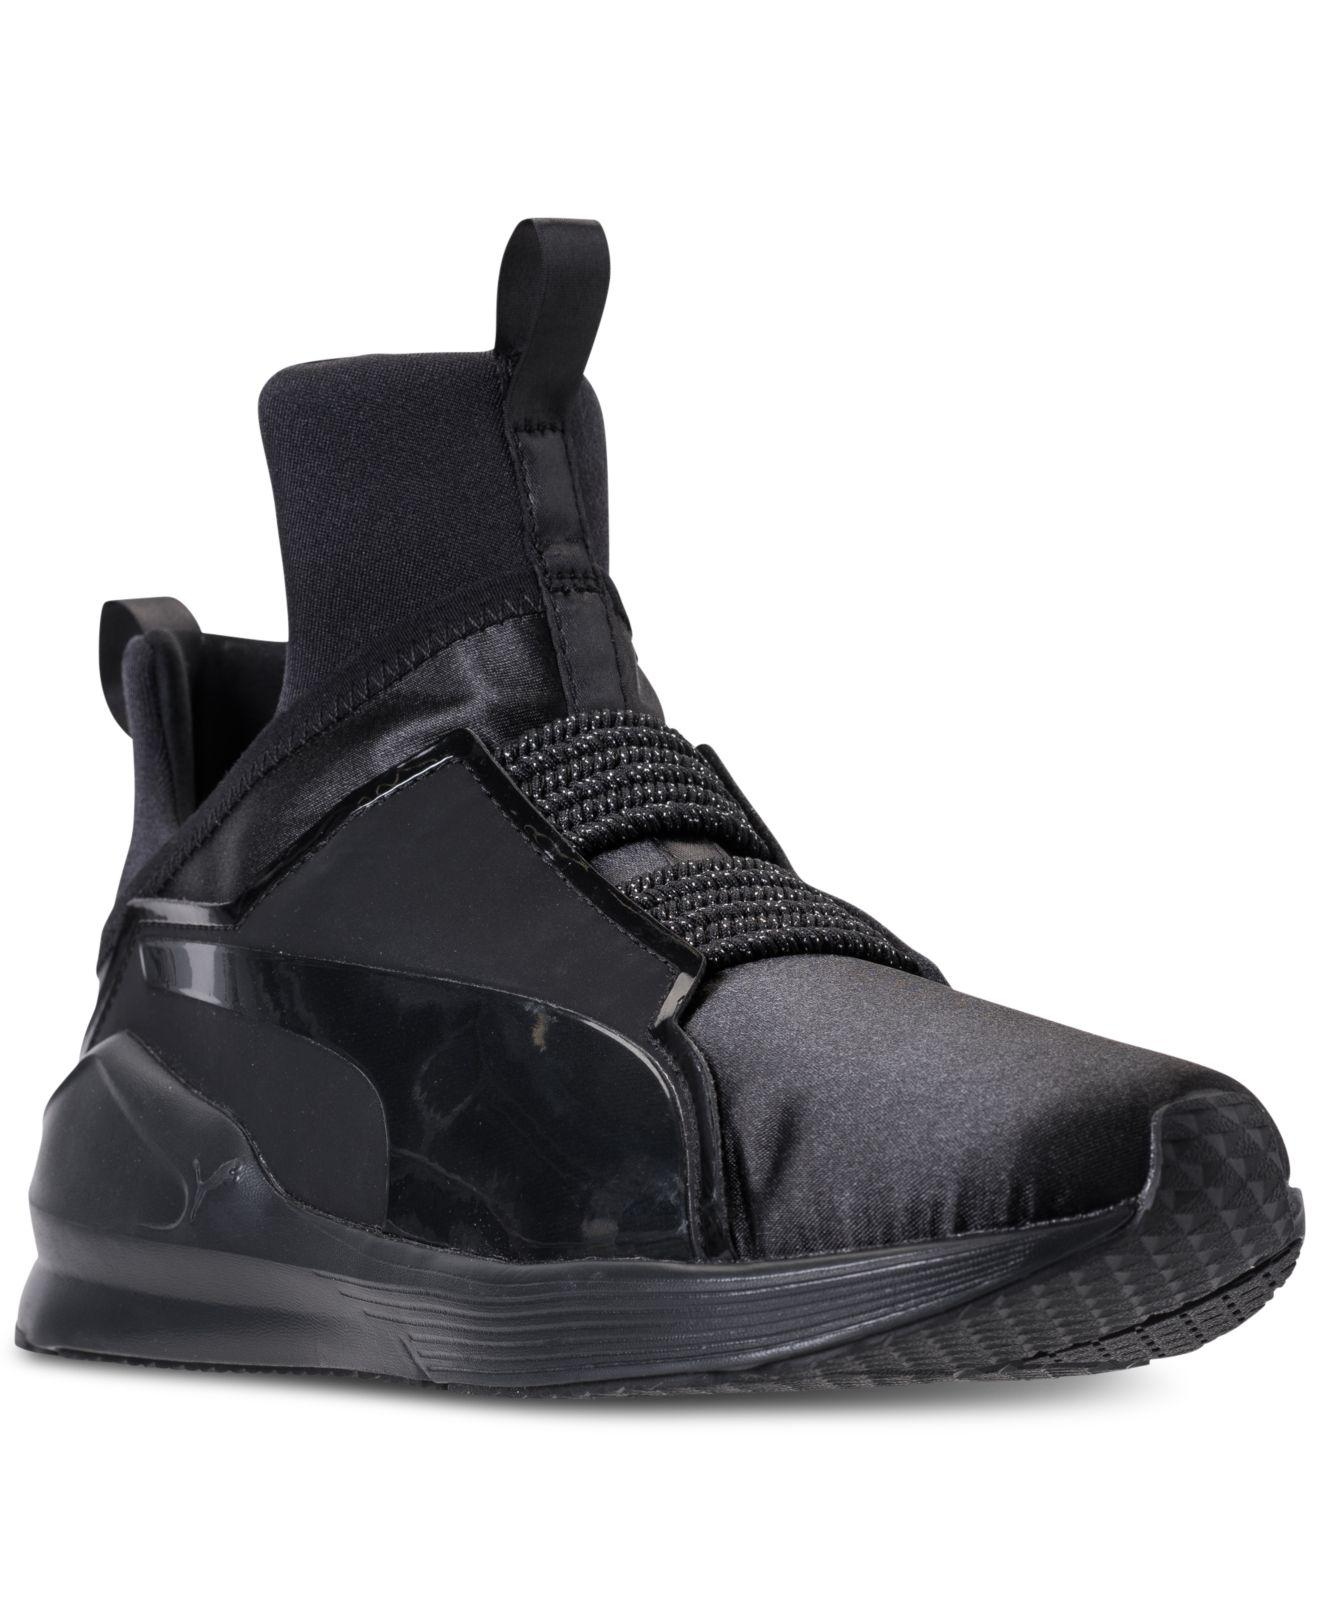 Lyst - Puma Fierce Satin Ep Casual Sneakers From Finish Line in Black ca58ad22a